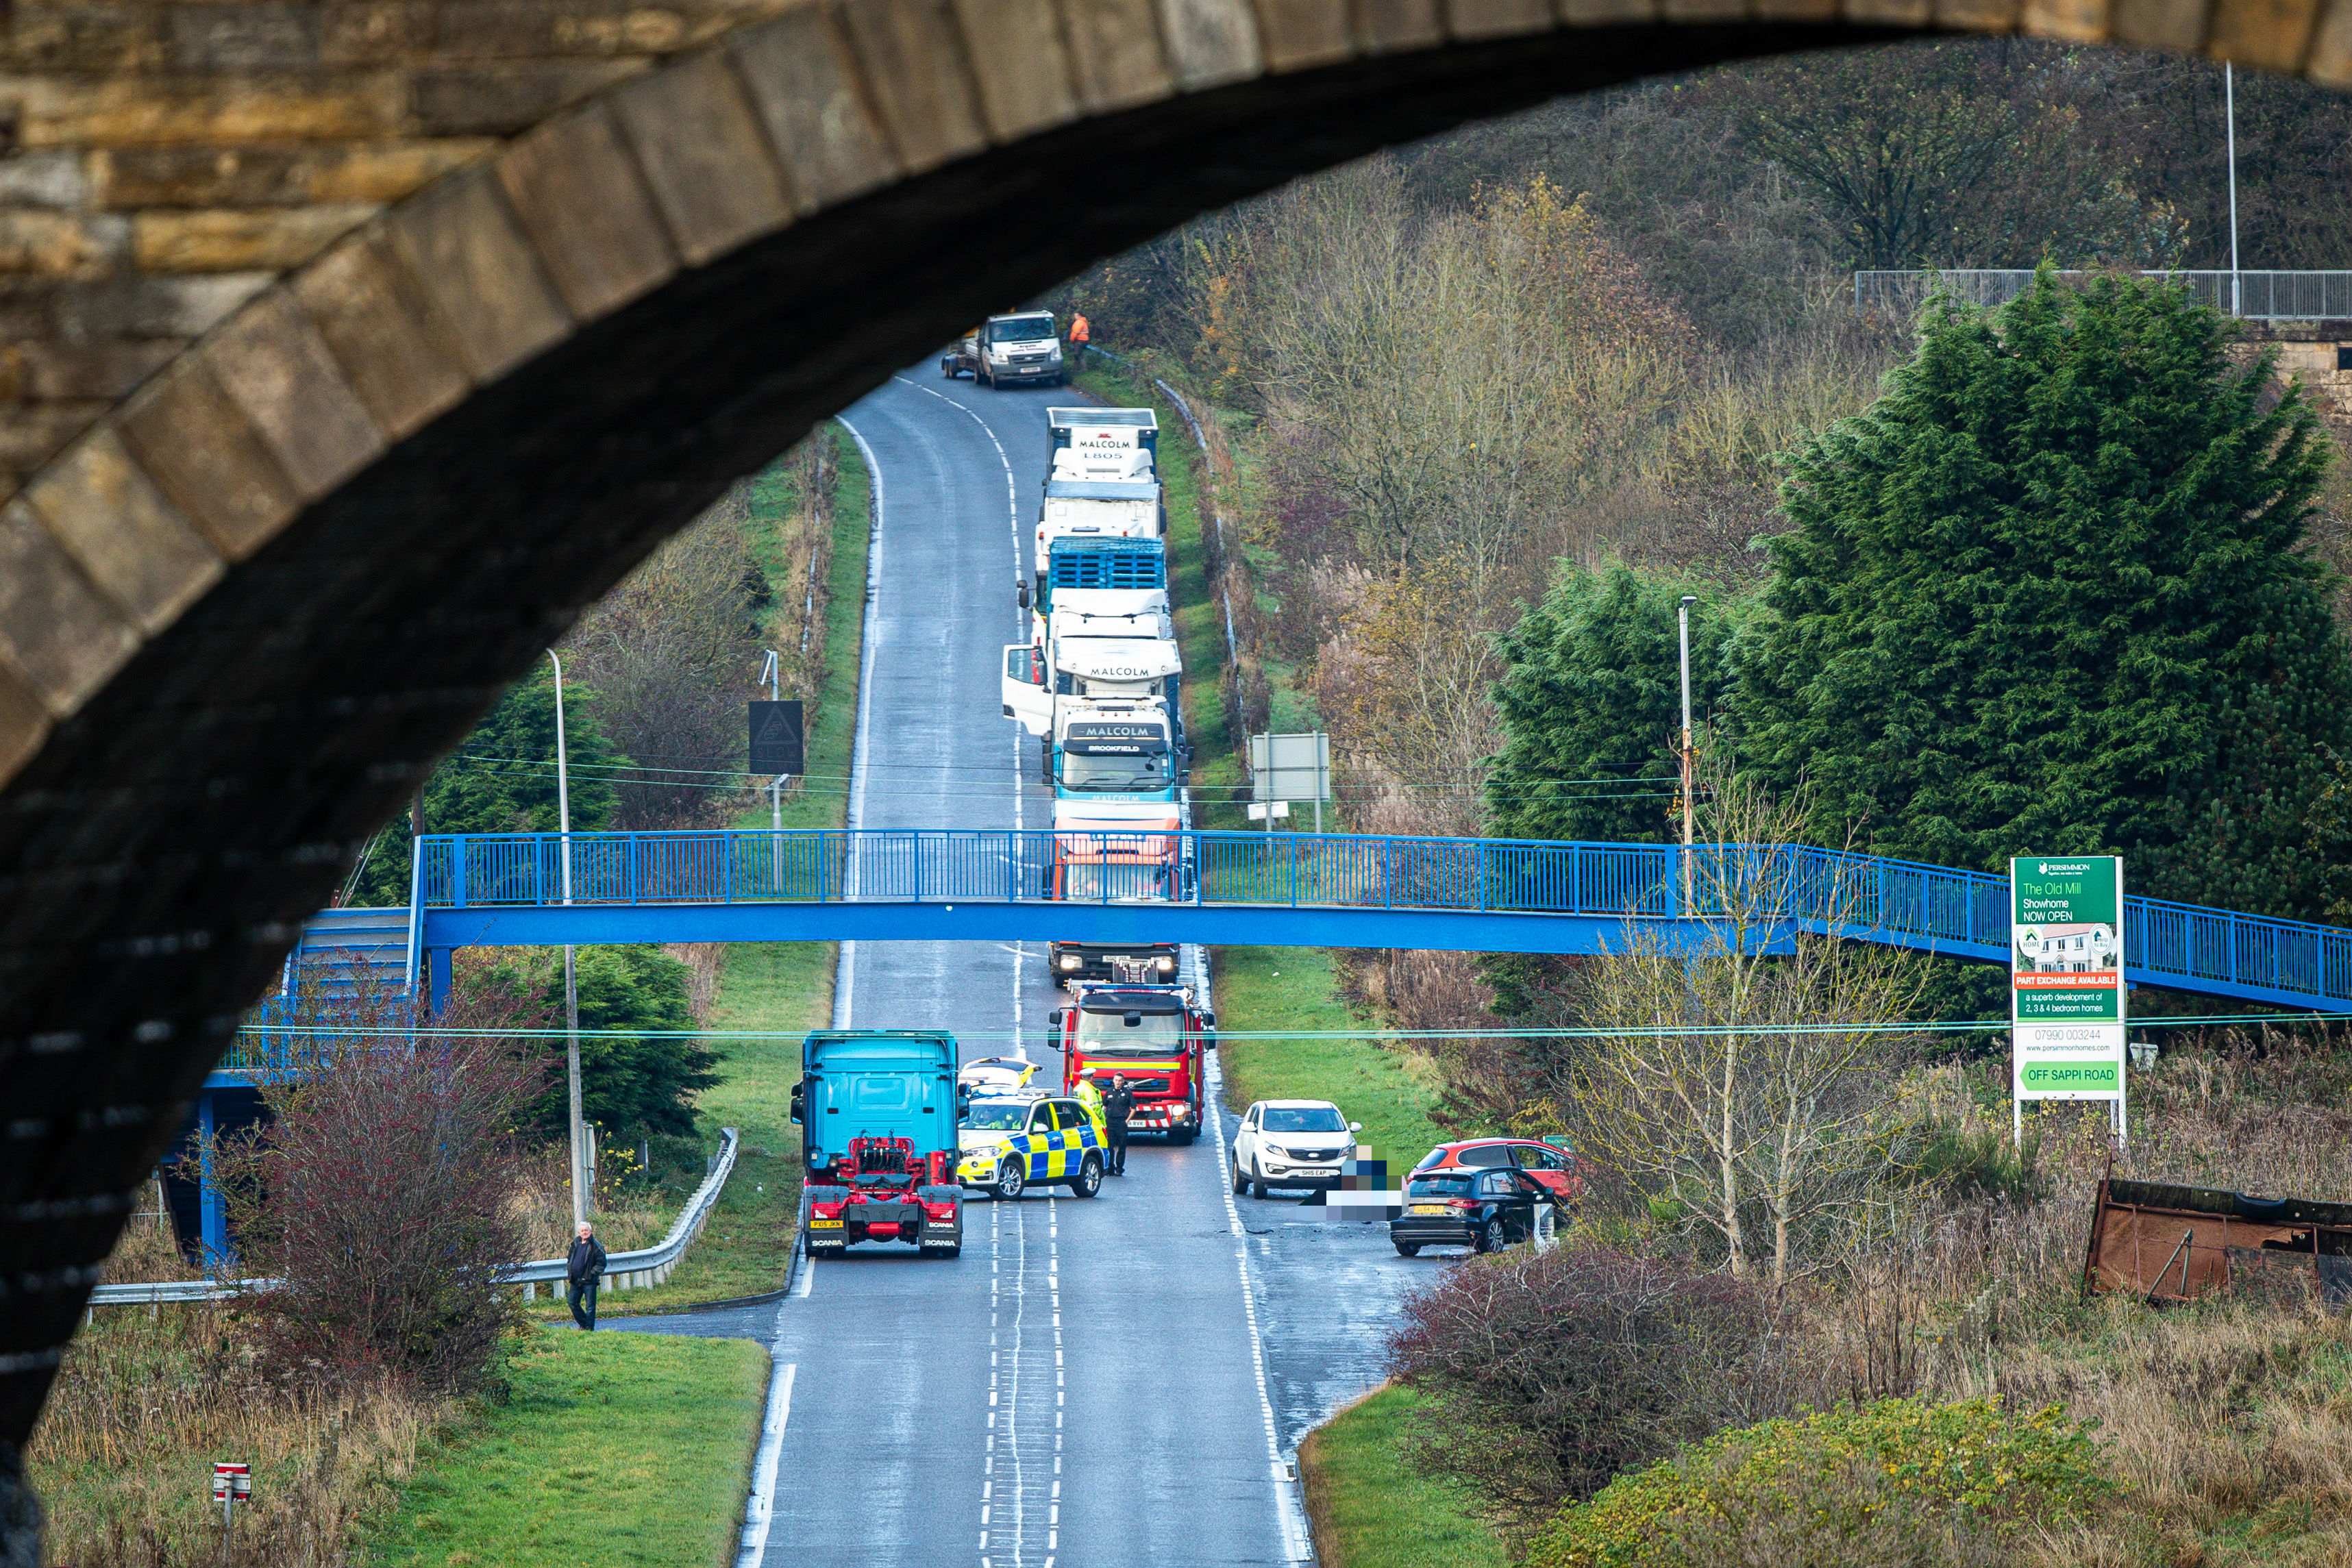 Police have closed the A911 Glenrothes to Leven road following the crash.